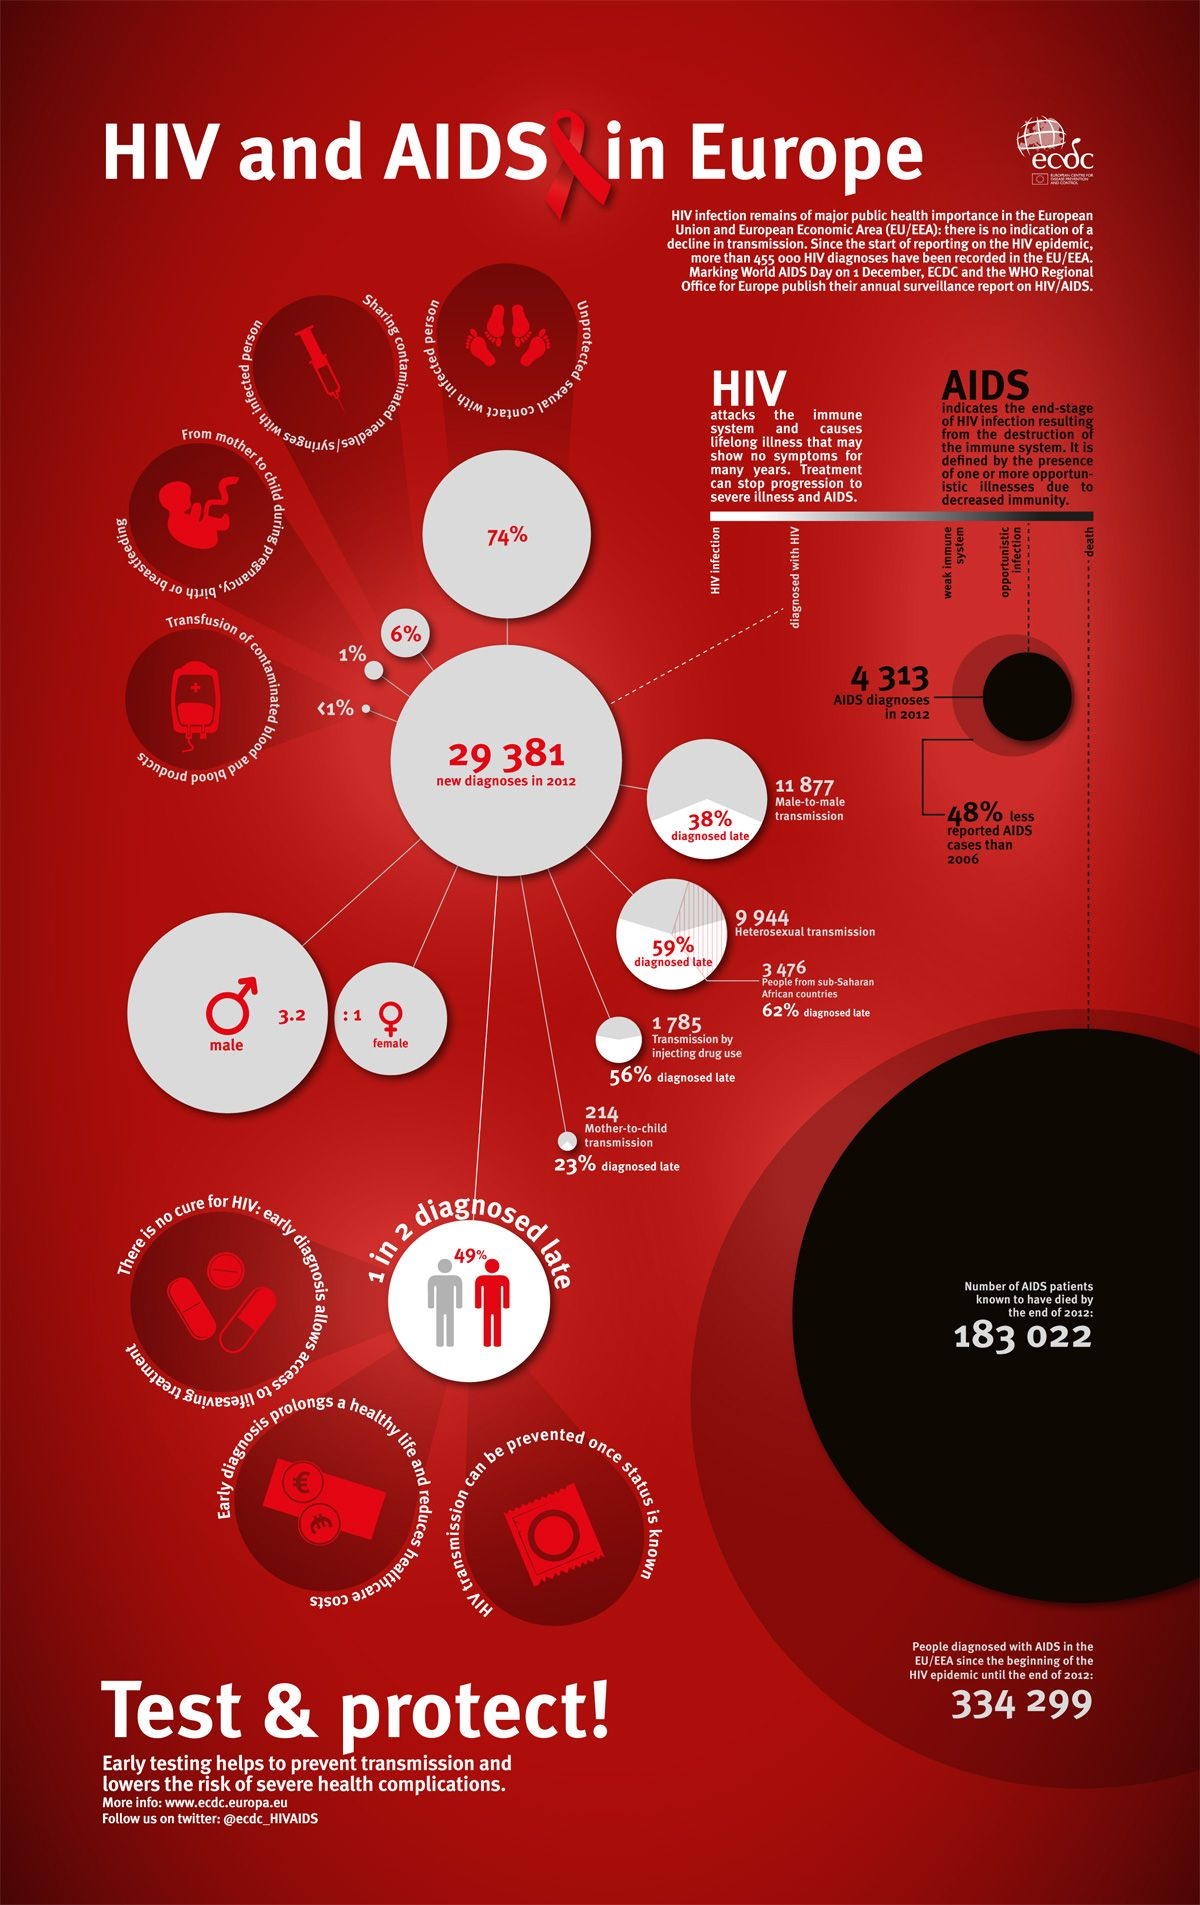 aids treatment in europe - 736×1168